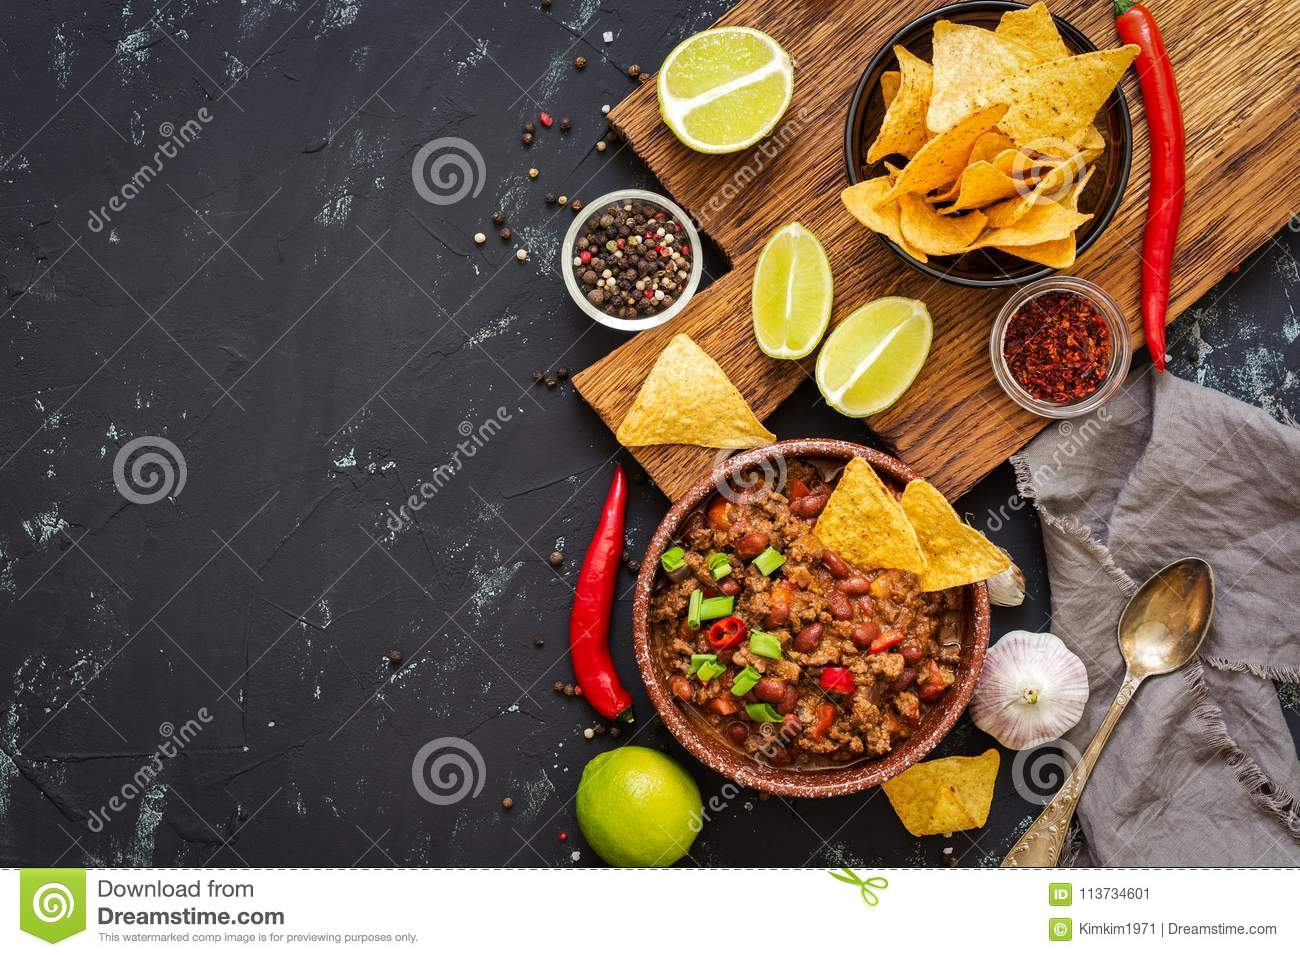 Chili con carne with nachos chips on rustic background.Mexican food. Place for text, top view.